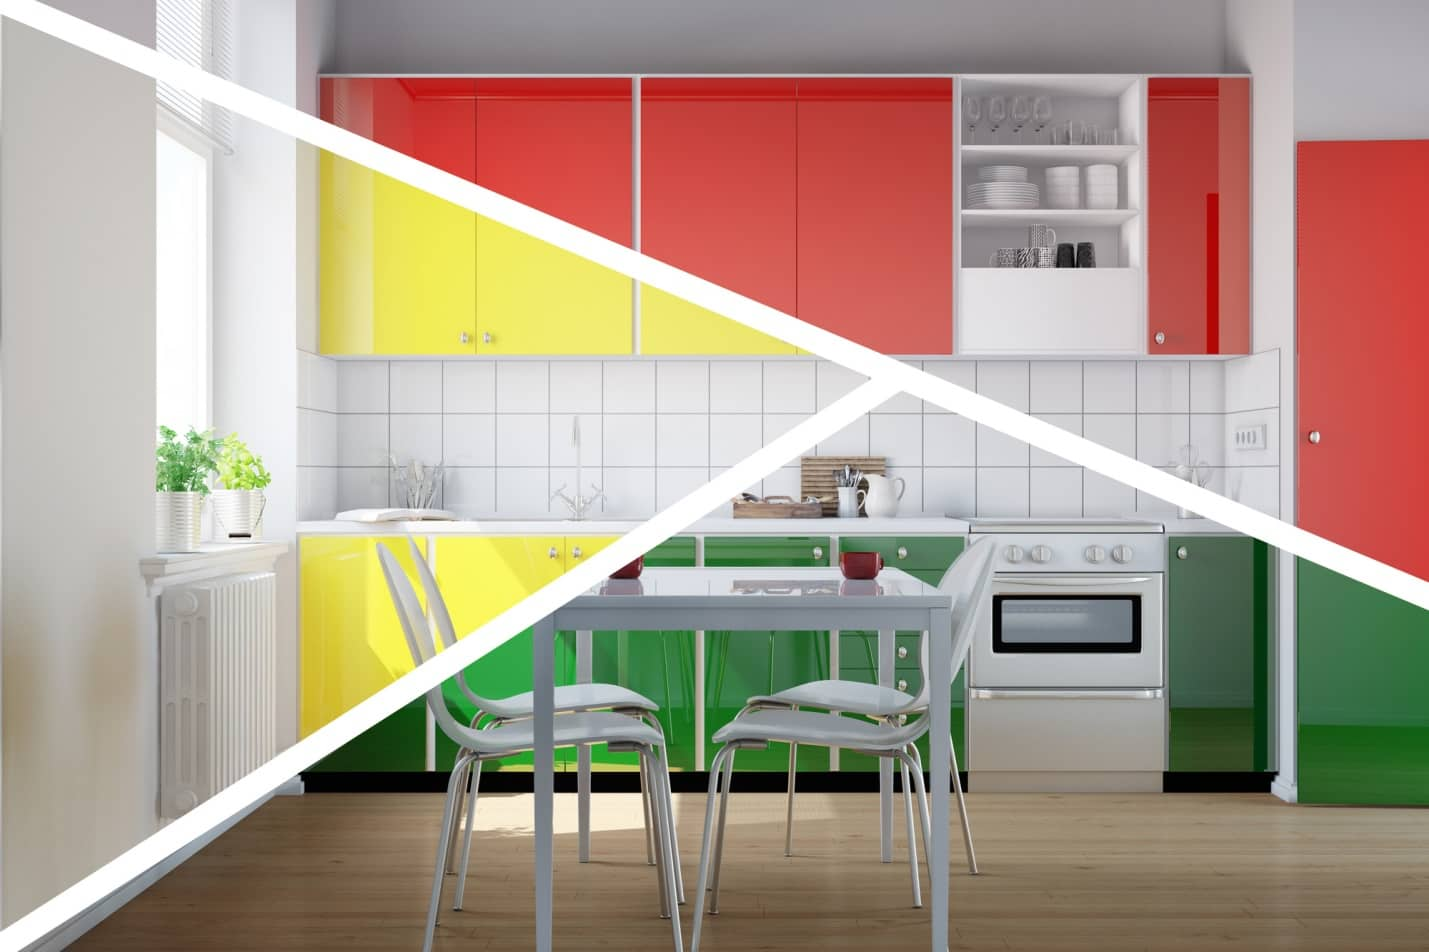 7 Pro Designer Tips for Redoing Kitchen Cabinets. The trying of different colors for modern facades